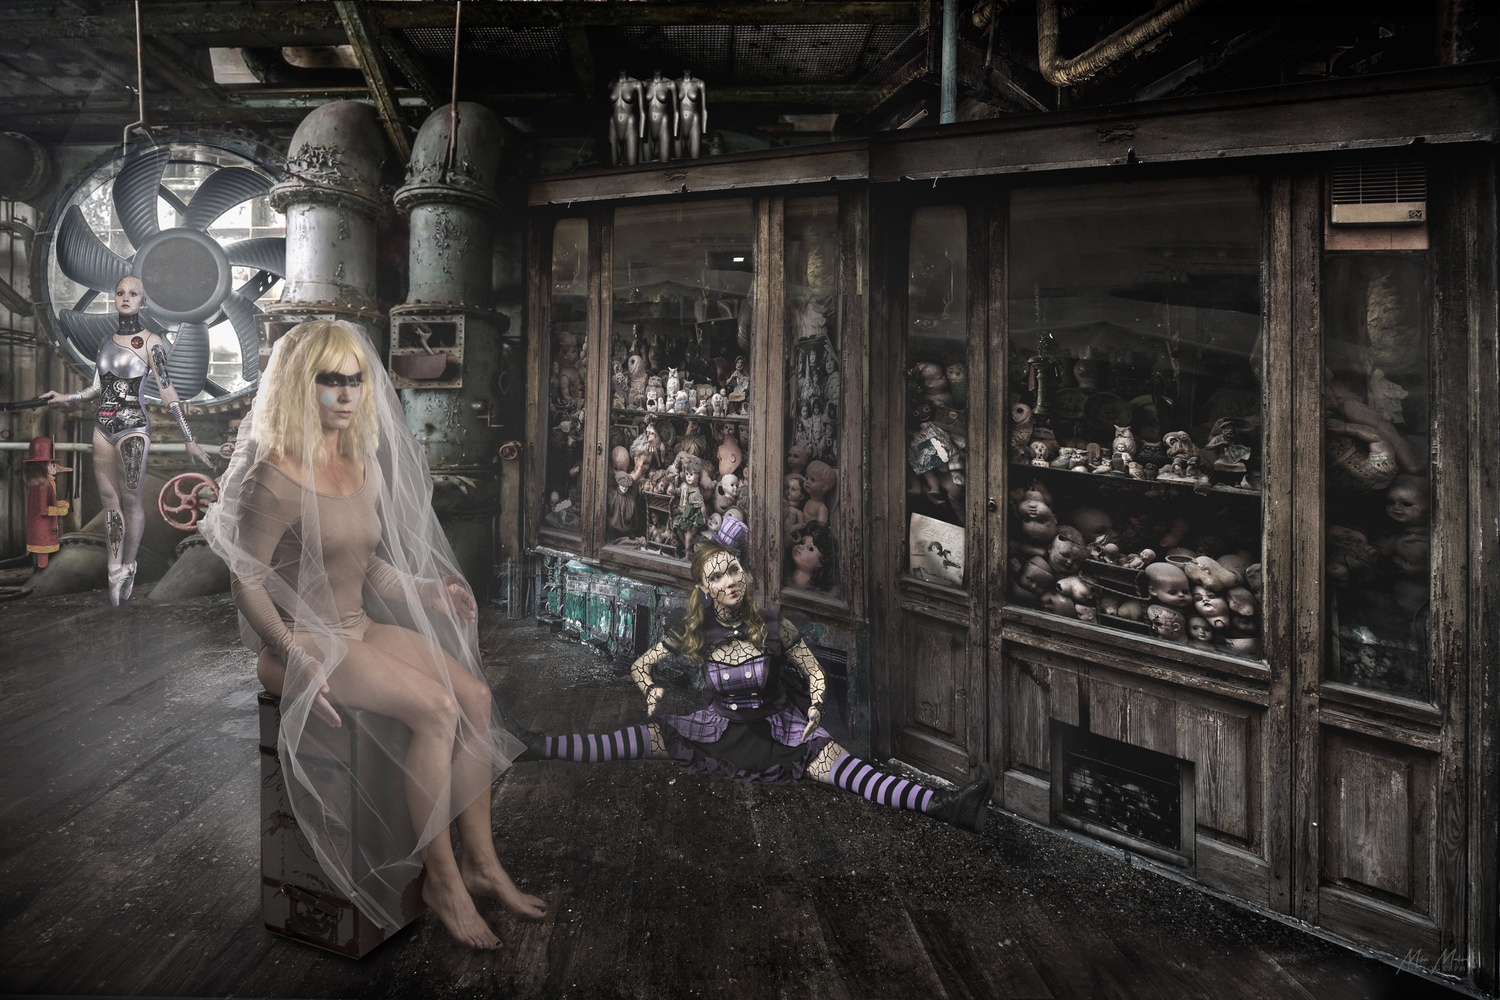 The Doll House by Mike Mahoney